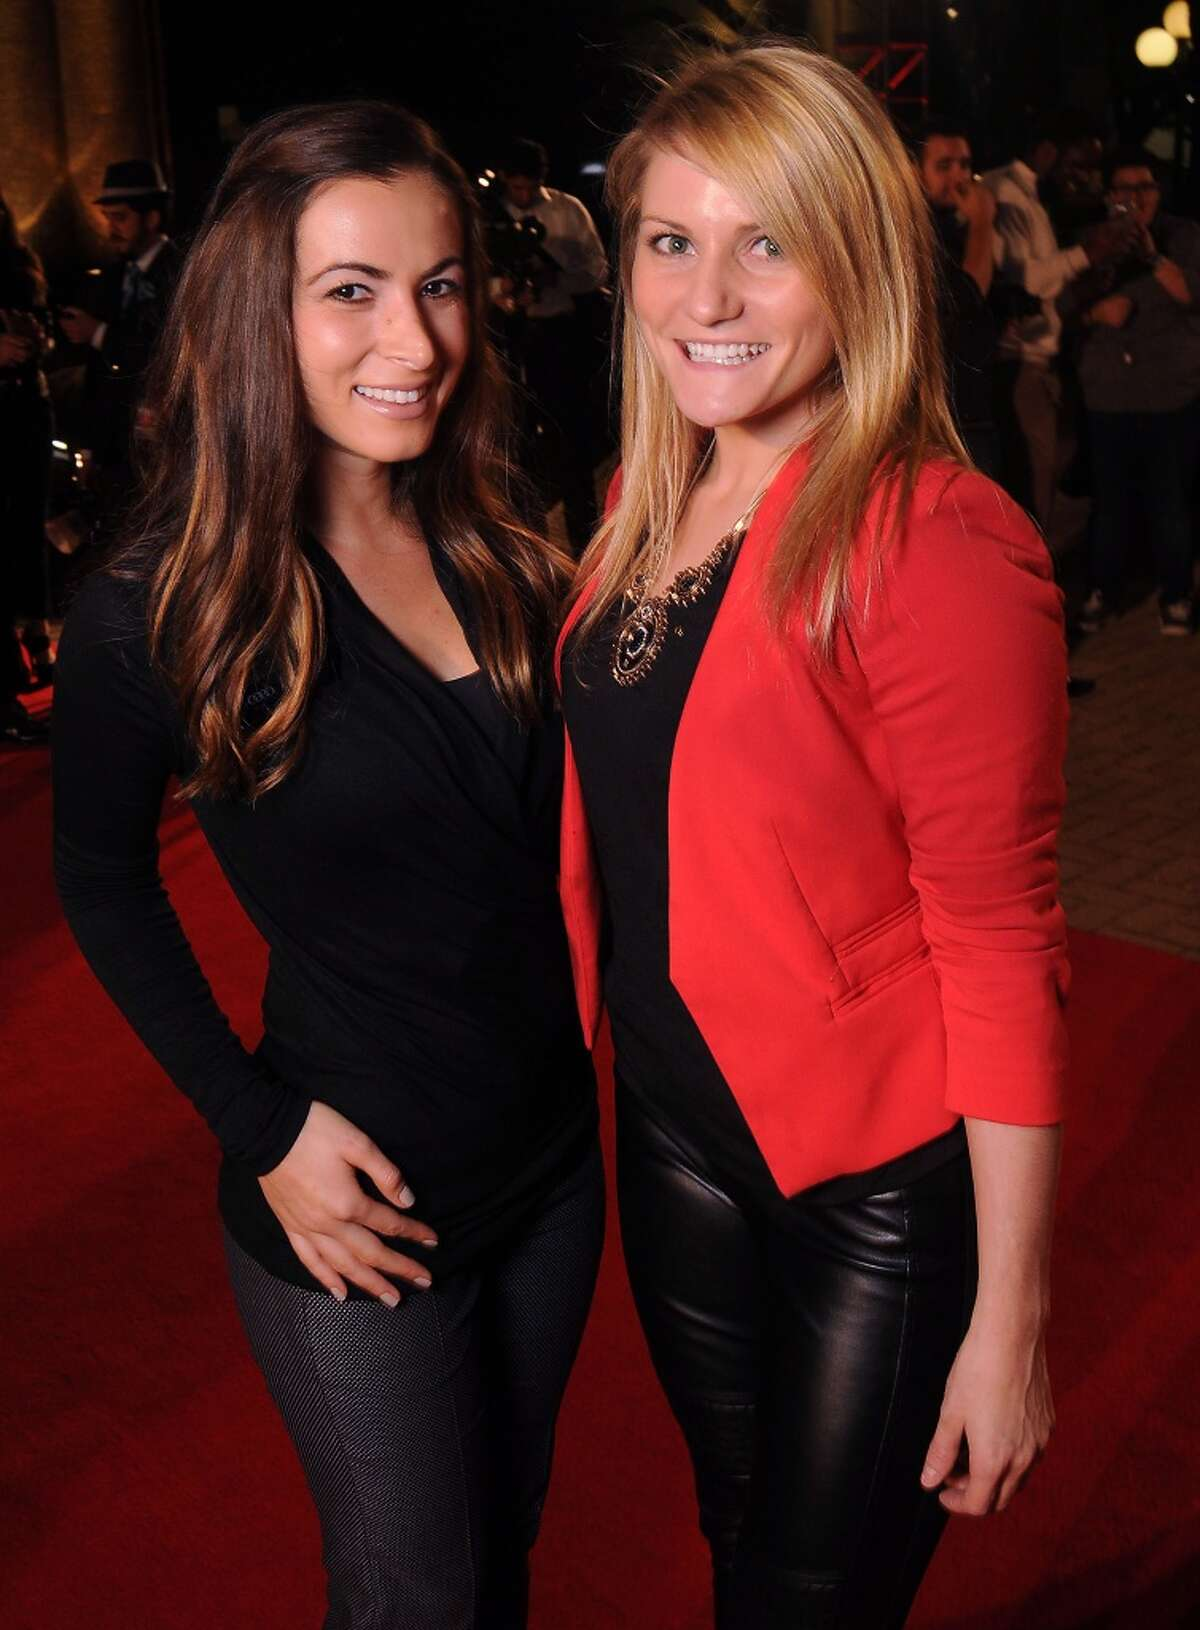 Geanina Bajenaru and Allison Piper on the red carpet at Fashion Houston 5 at the Wortham Theater Wednesday Nov. 19, 2014.(Dave Rossman photo)